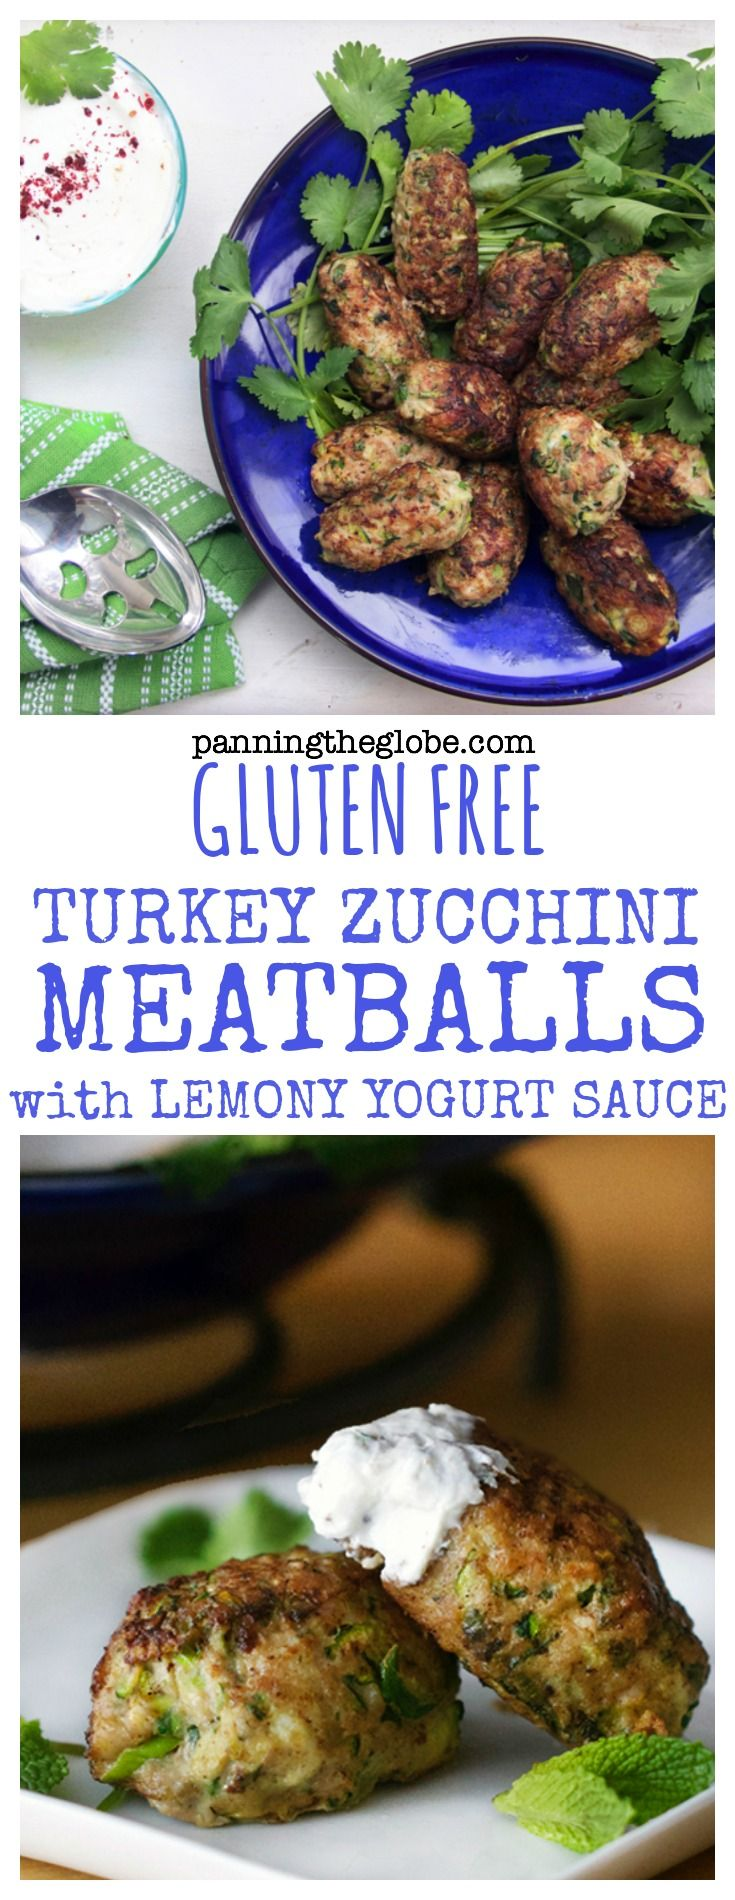 Great as a main course or for appetizers - scrumptious gluten free turkey zucchini meatballs from chef Ottolenghi.